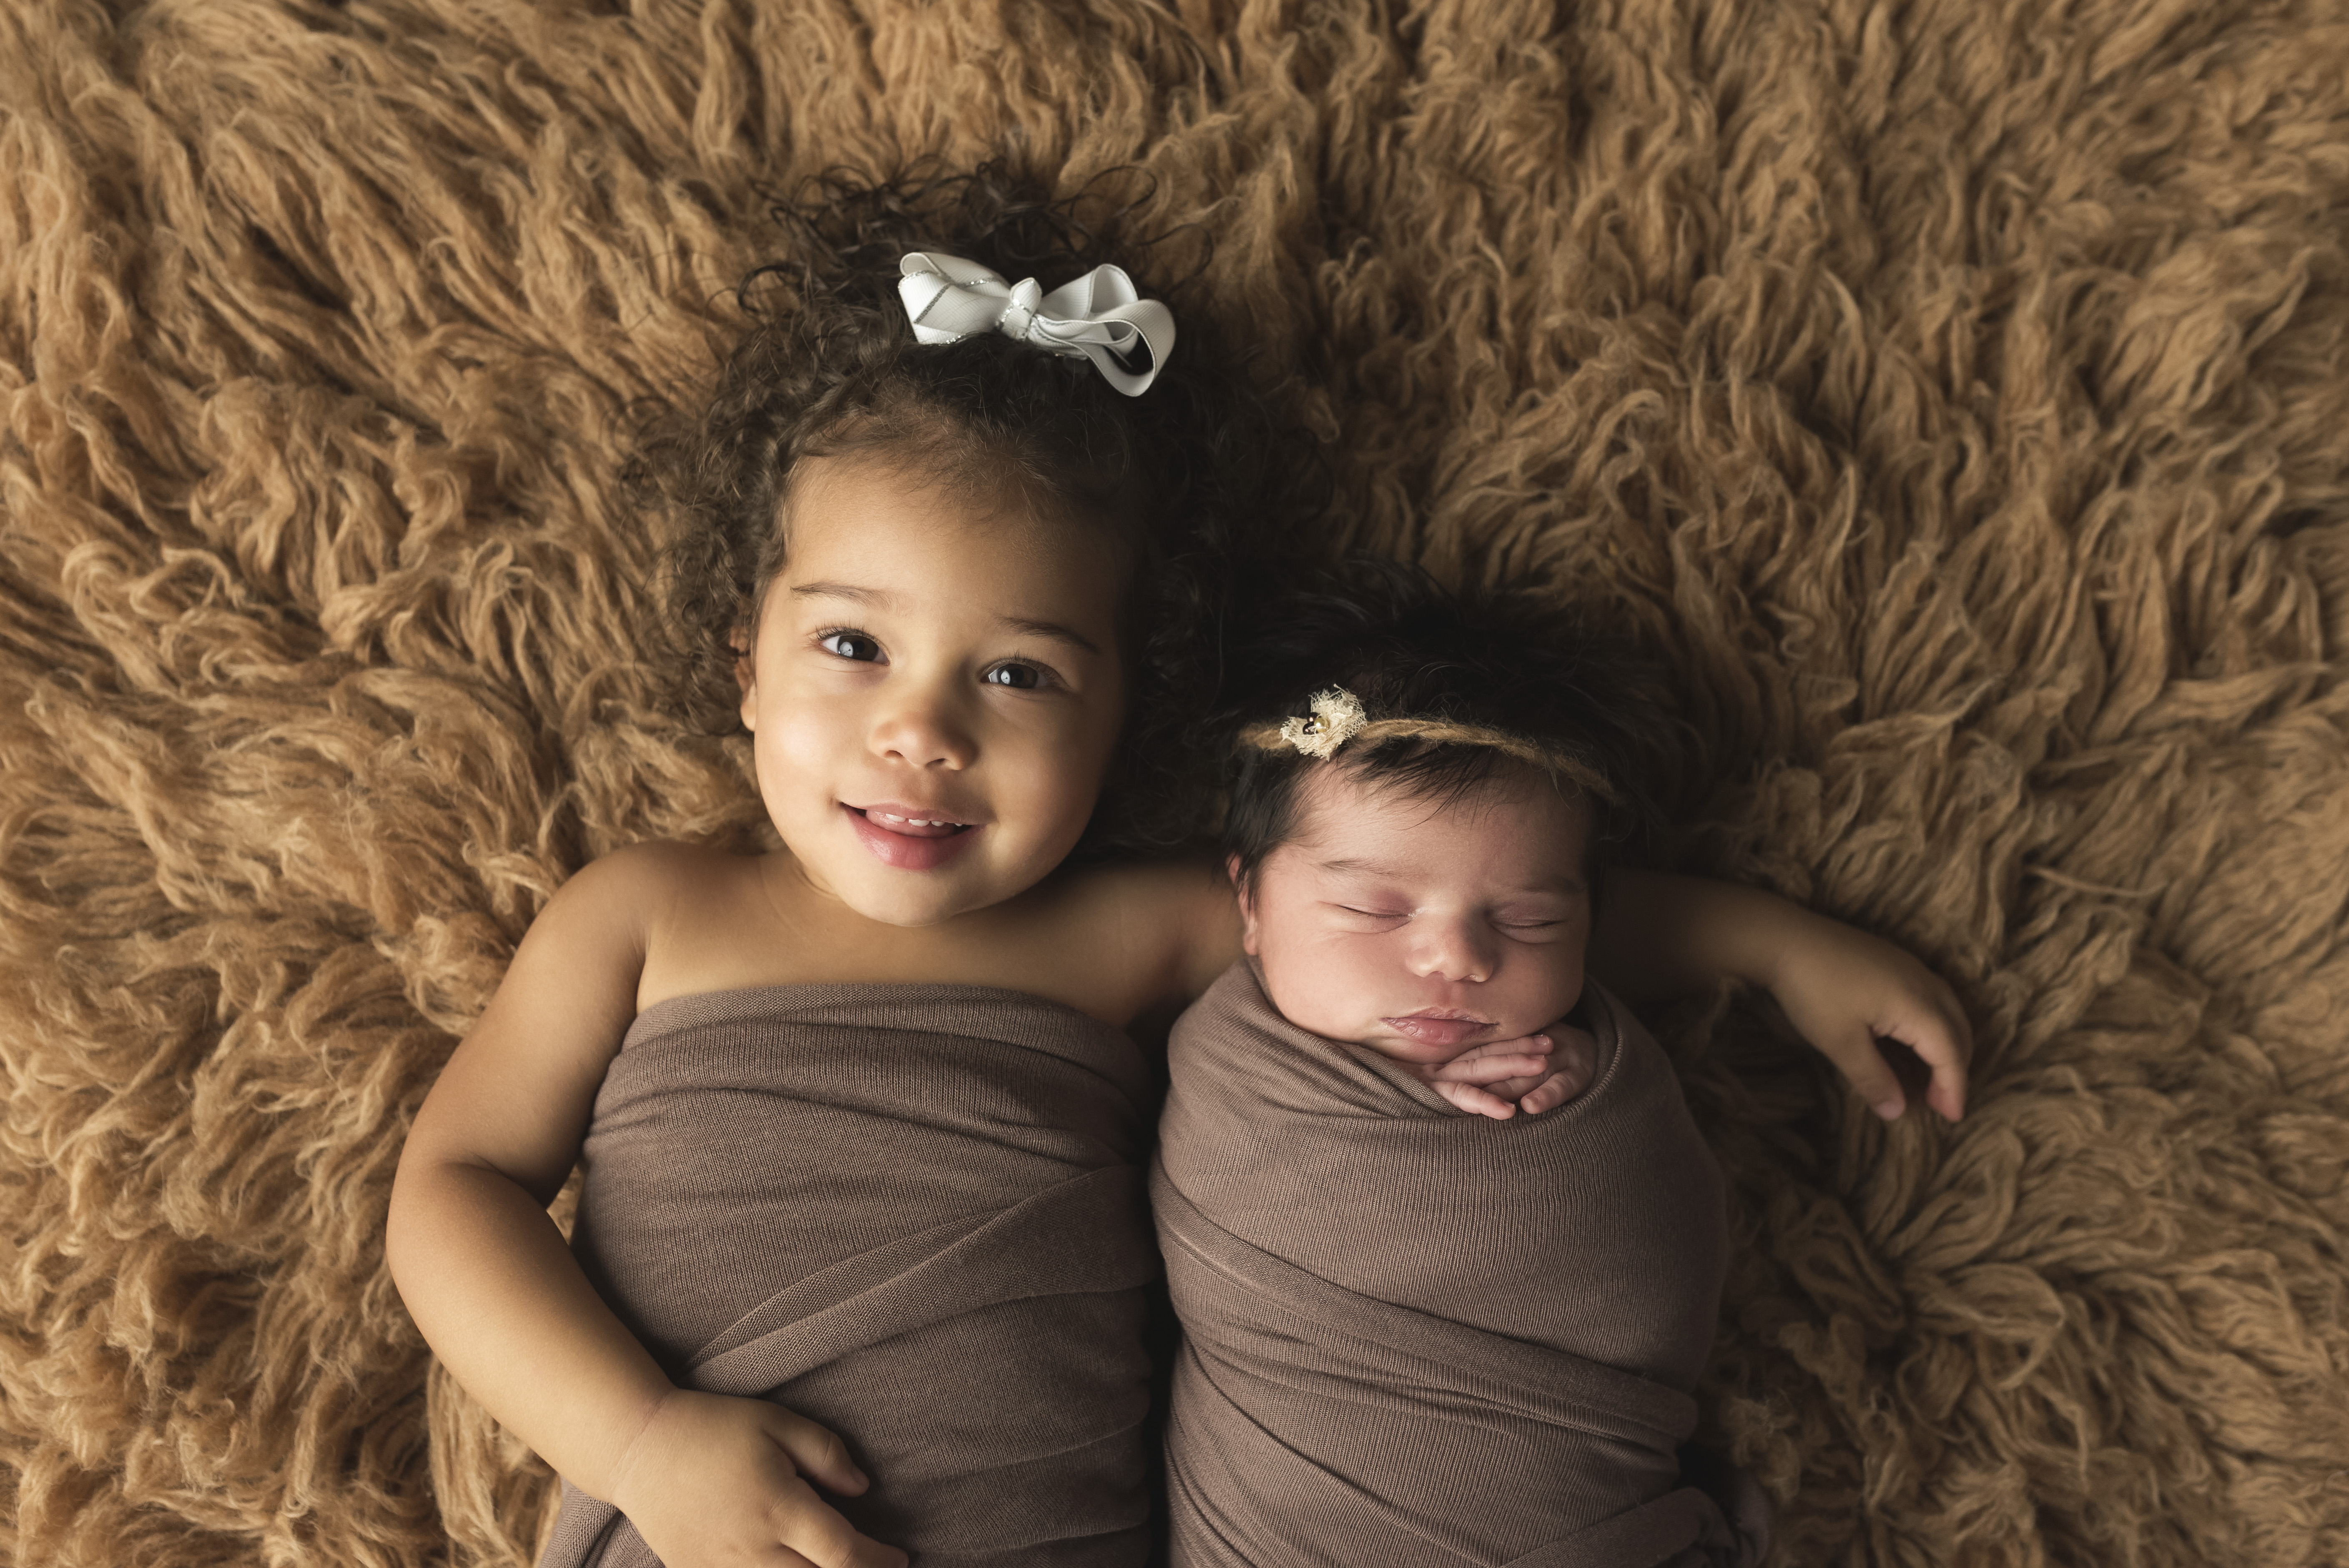 newborn sibling pictures young toddler baby